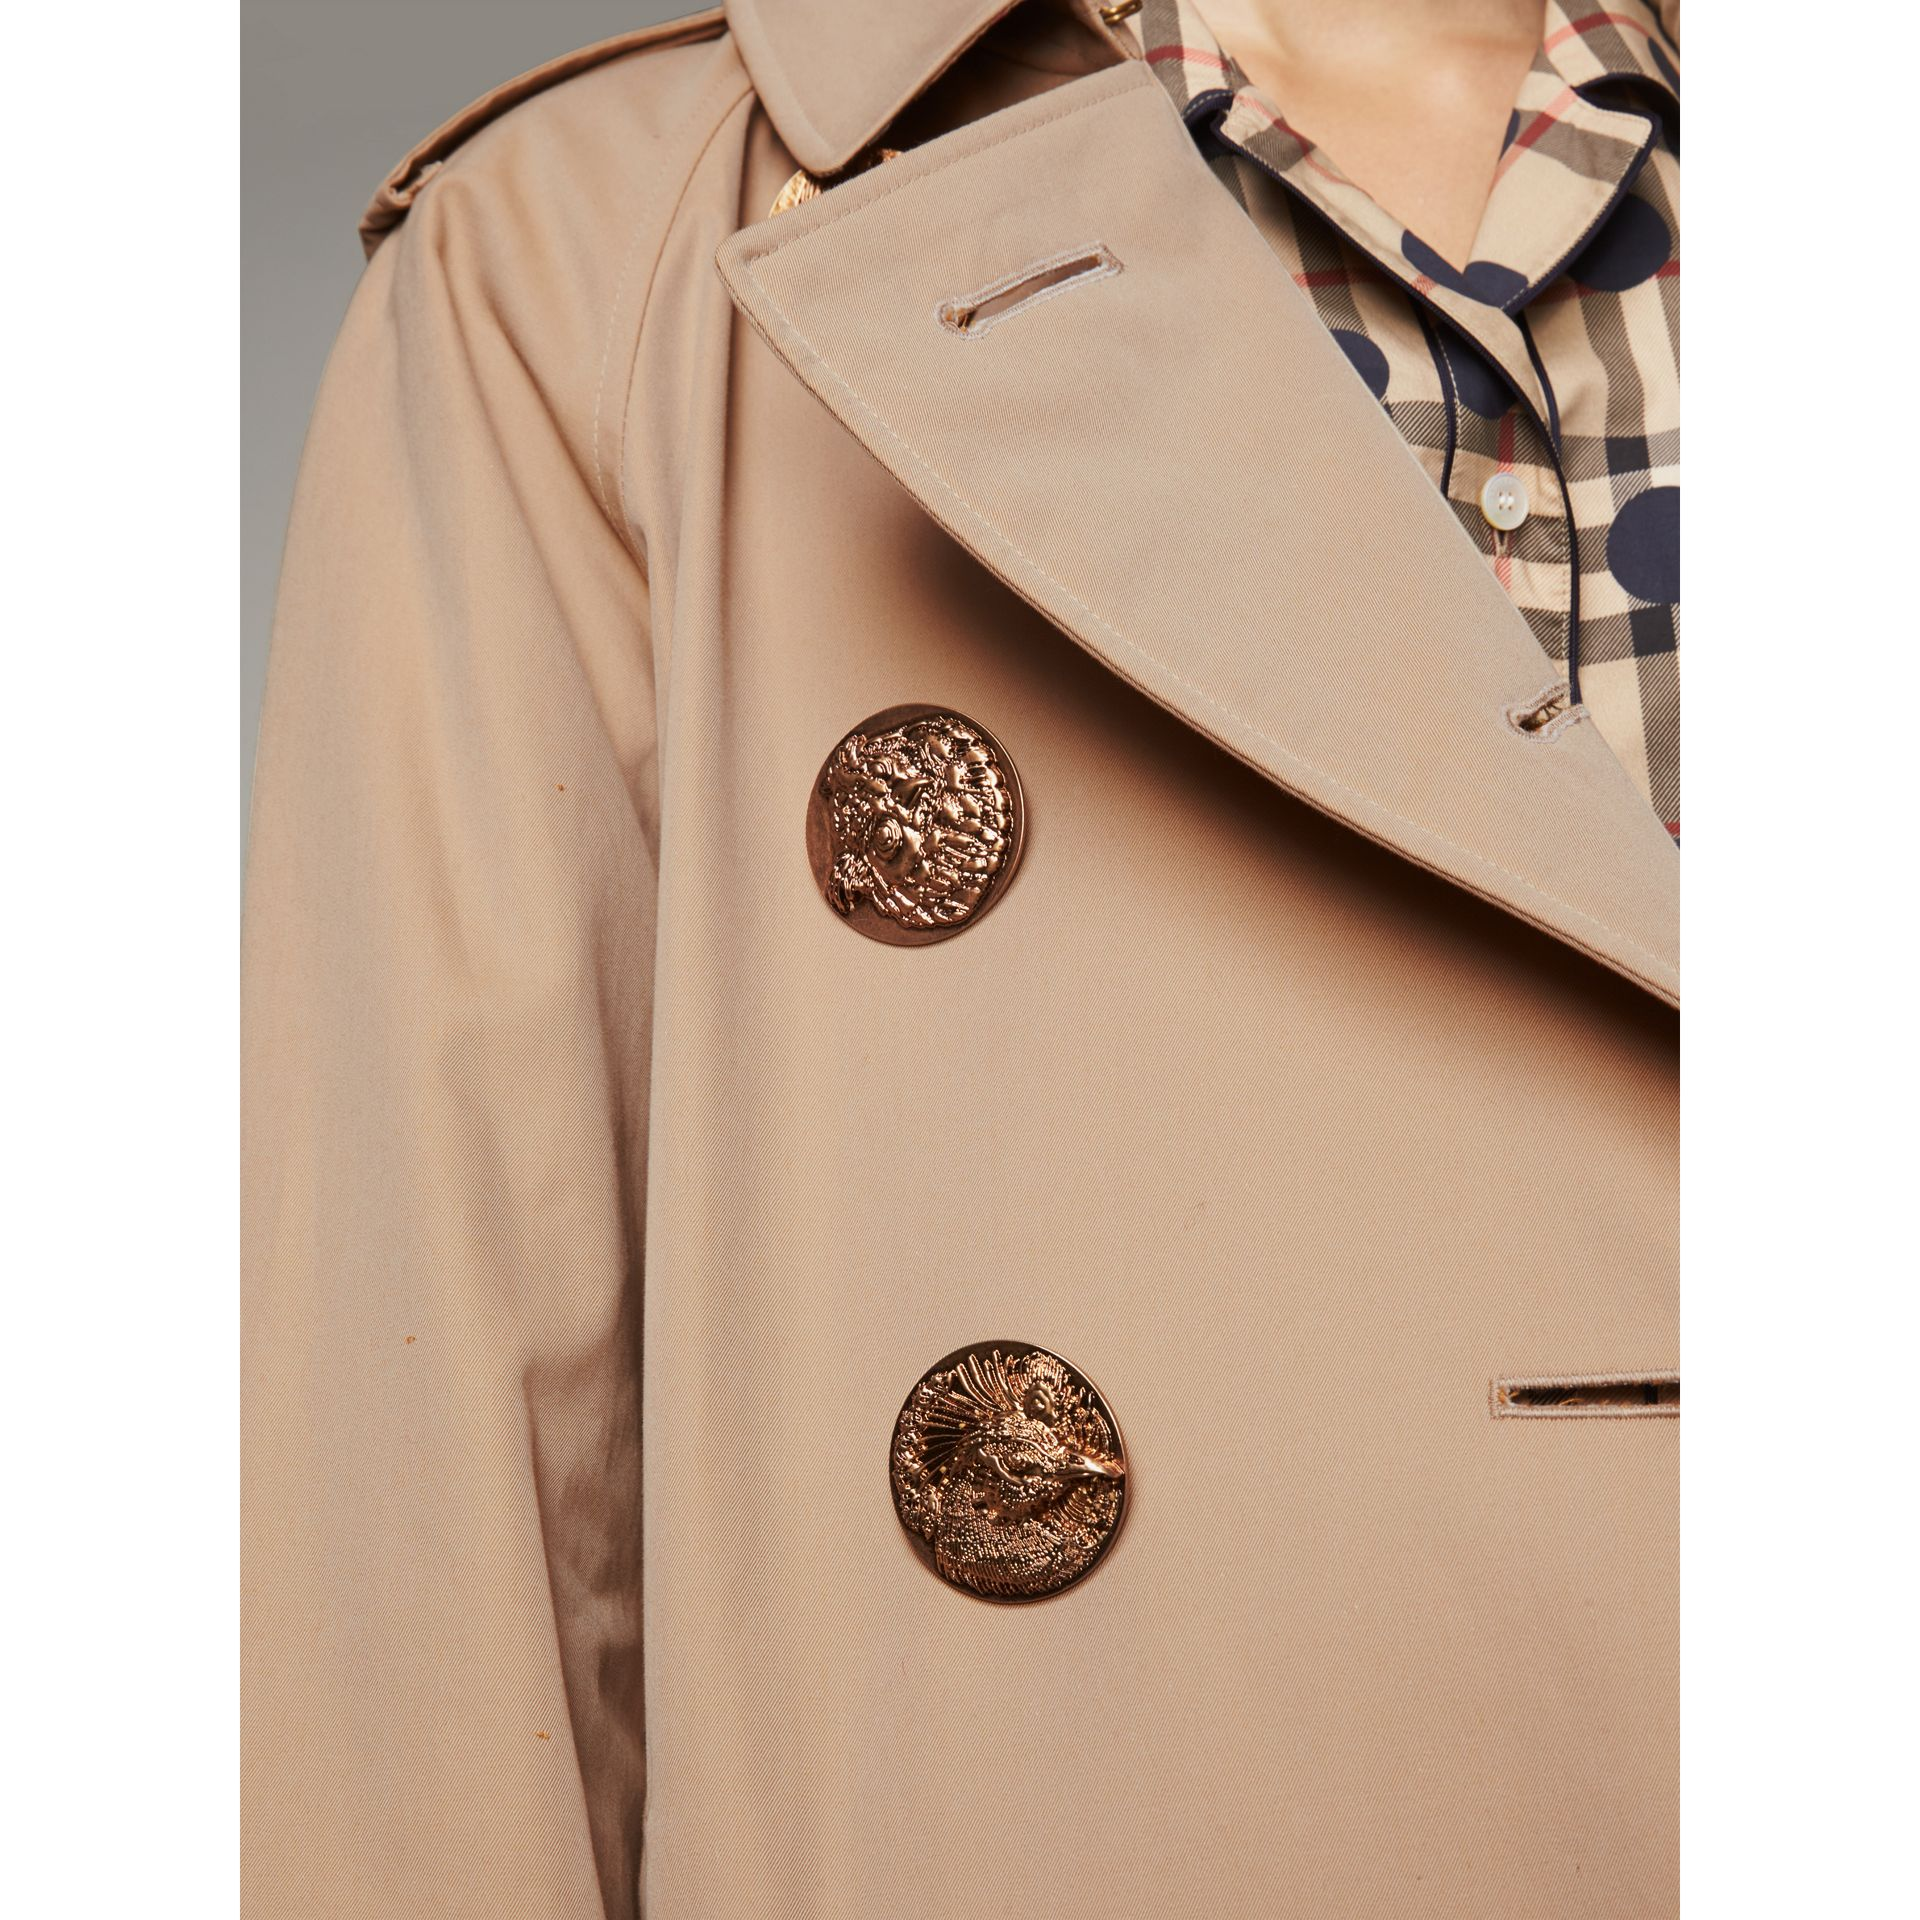 Trench coat in gabardine di cotone con bottoni decorati (Miele) - Donna | Burberry - immagine della galleria 2